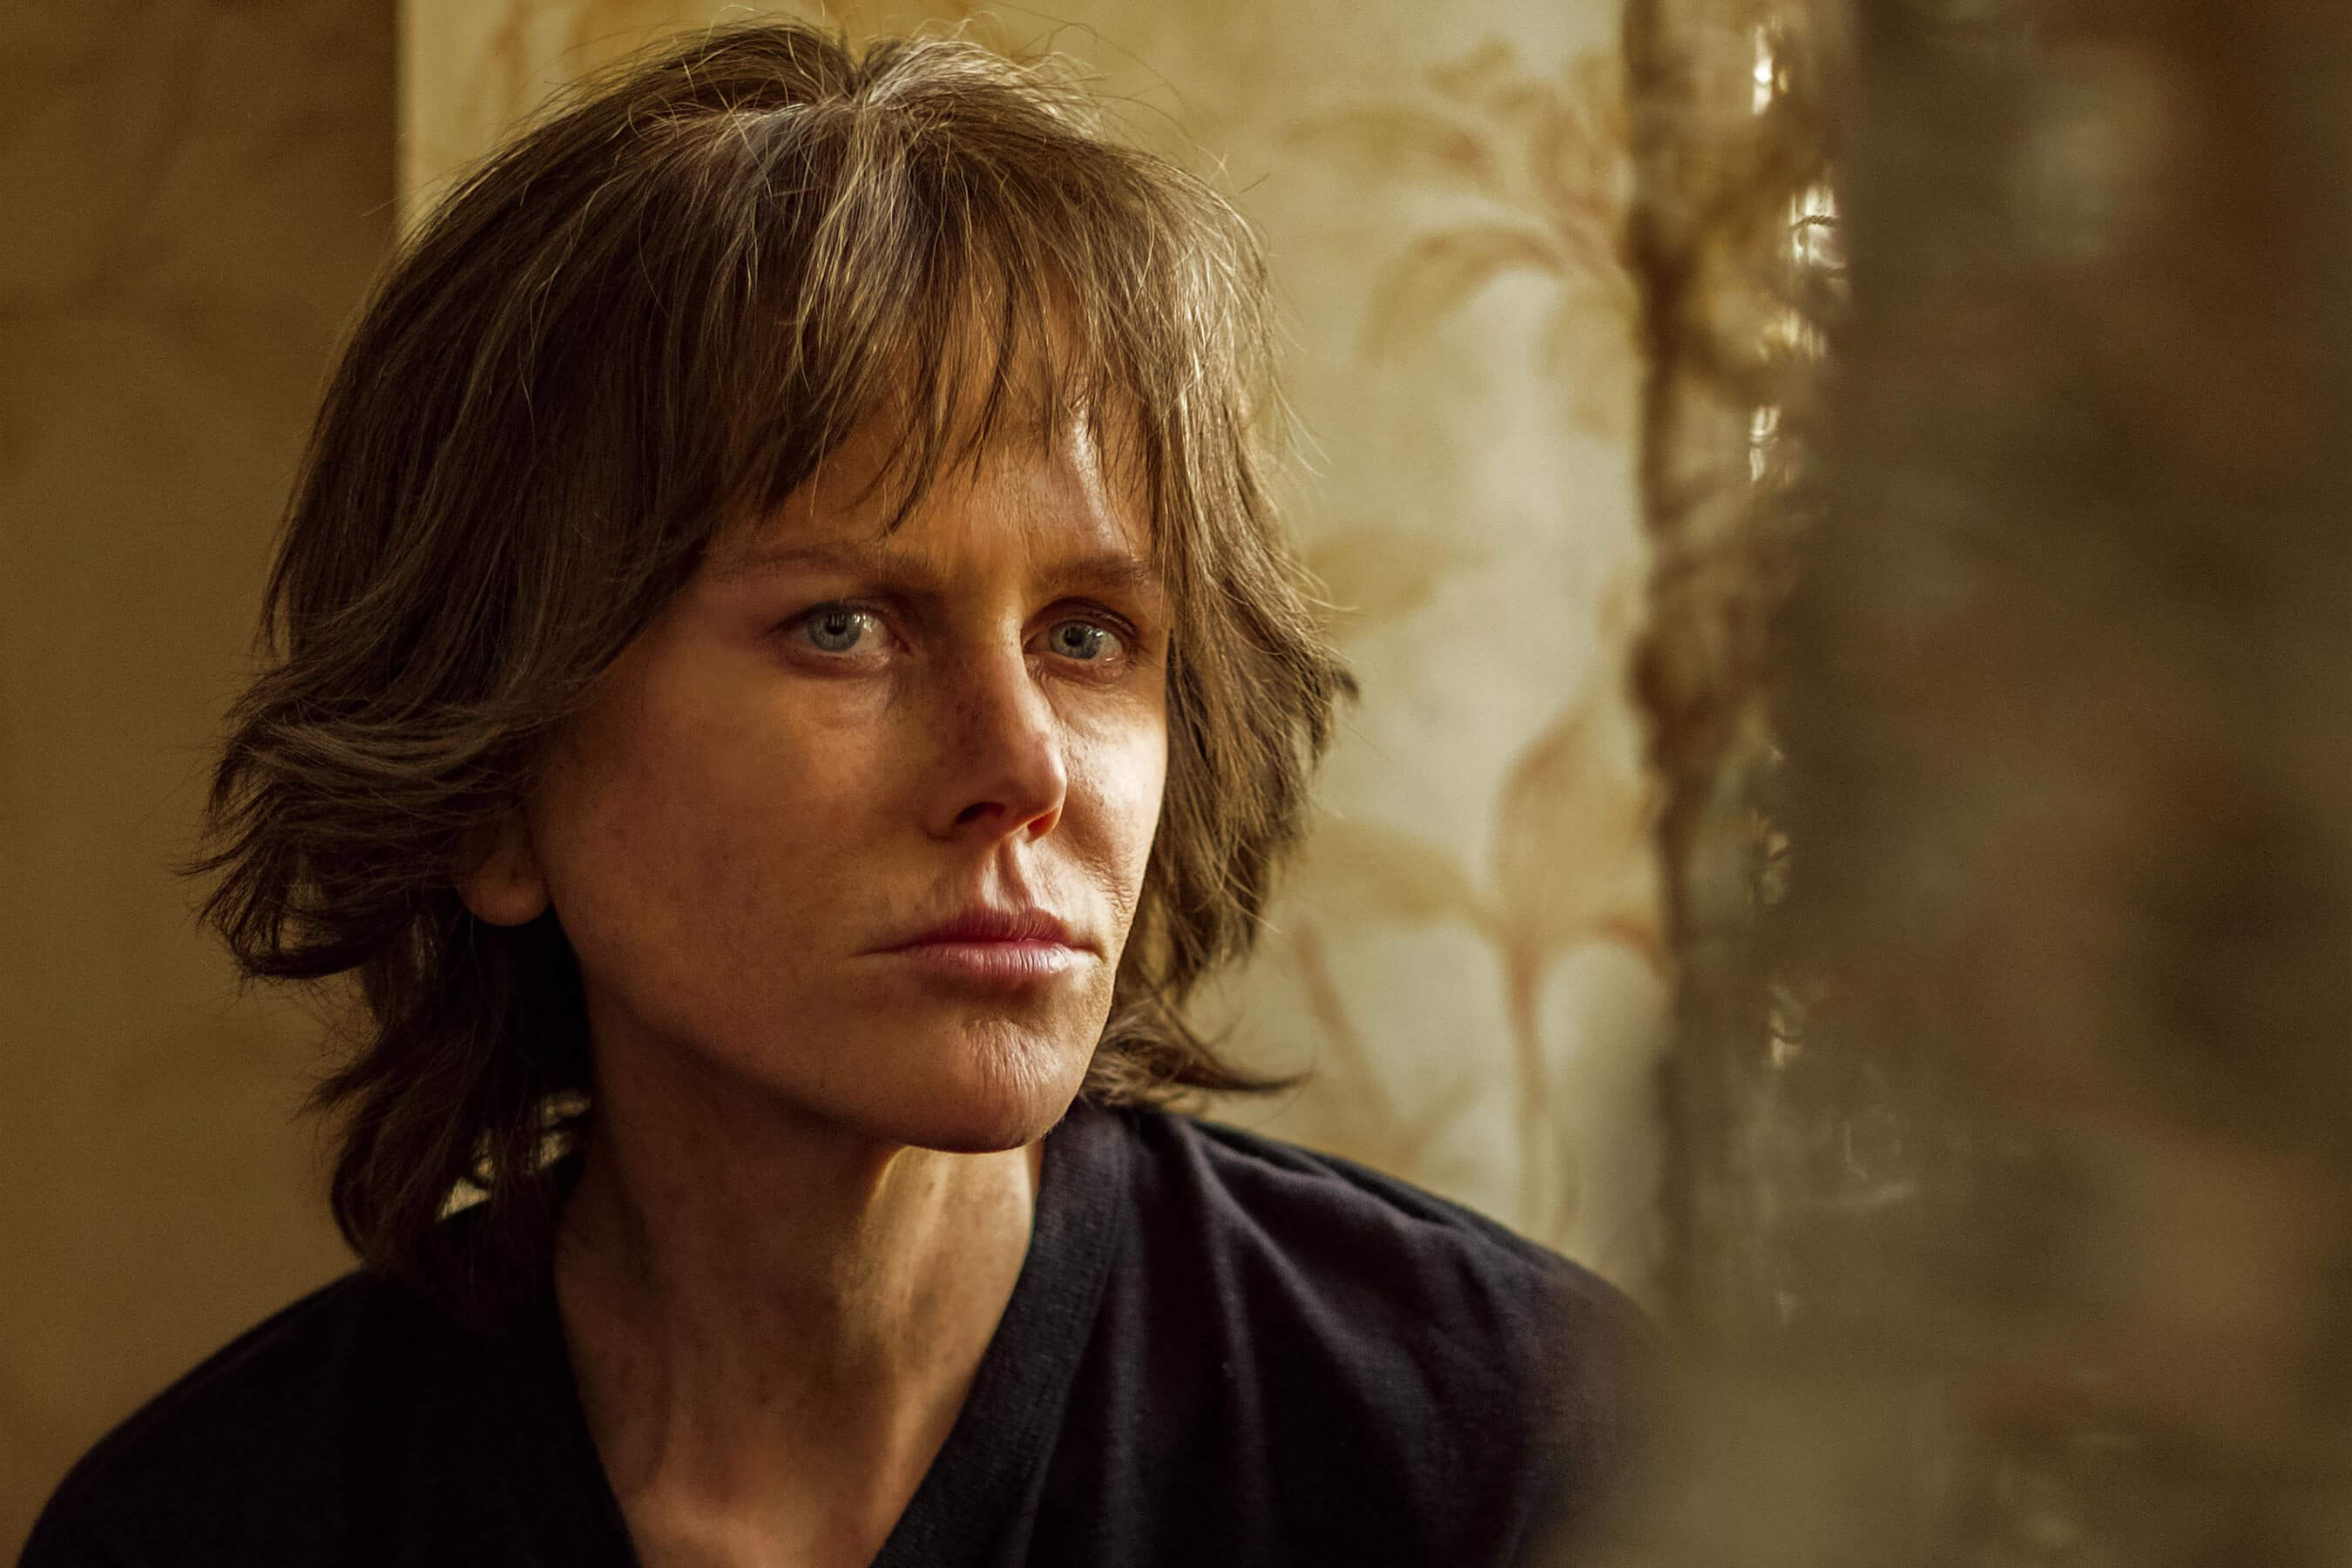 Nicole Kidman in Karyn Kusama's DESTROYER